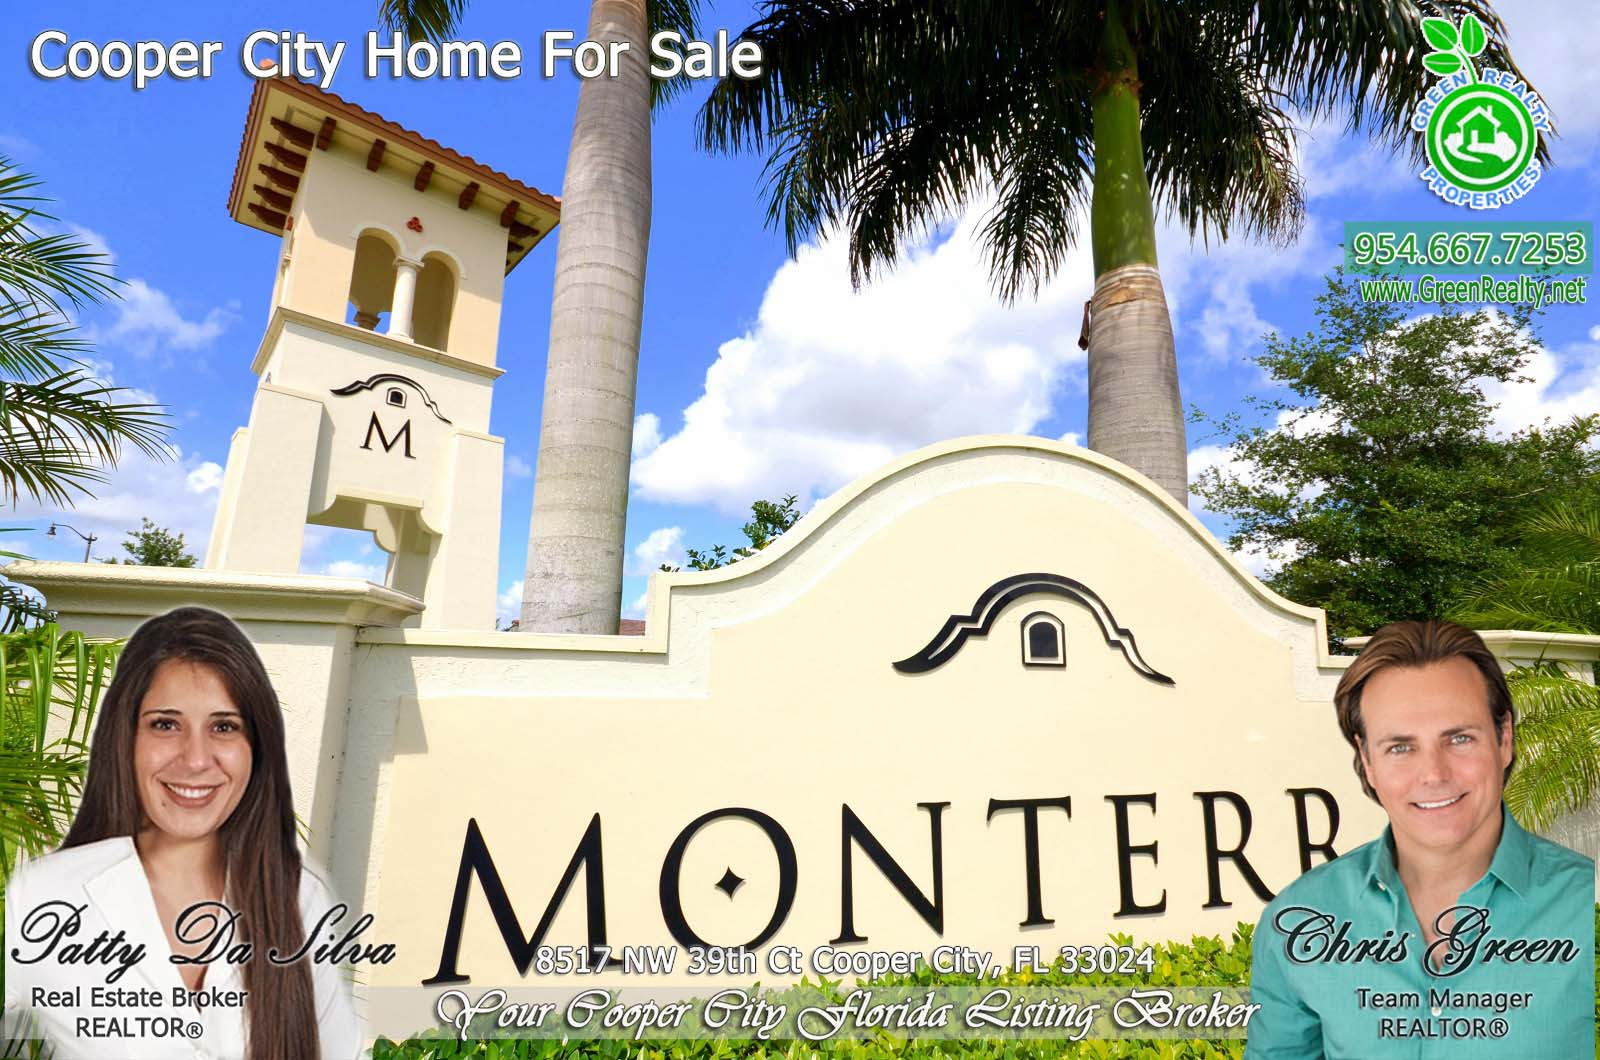 58 Monterra Real Estate Experts (3)